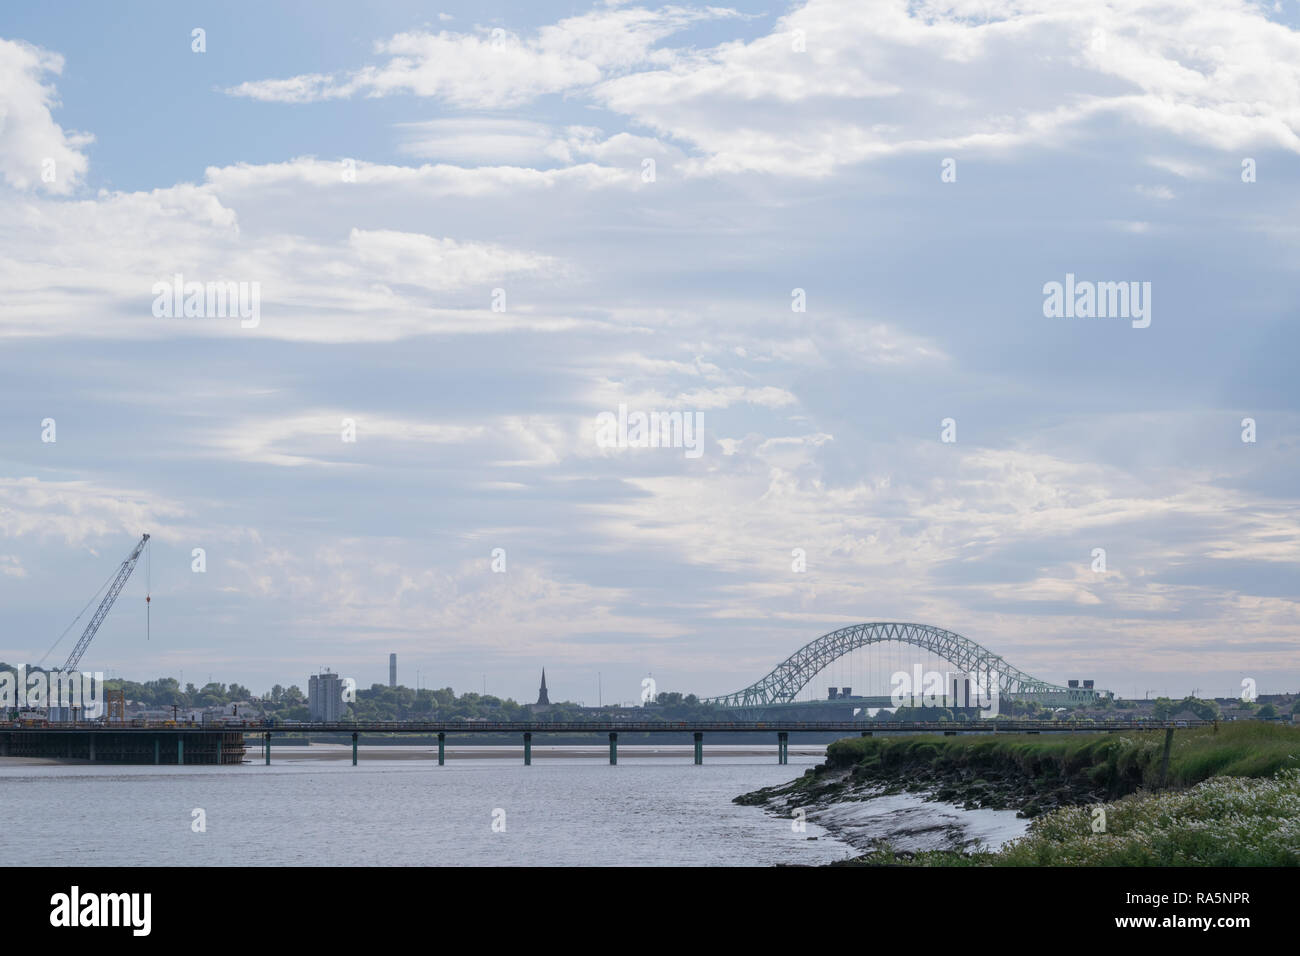 View of the Silver Jubilee Bridge spanning the River Mersey between Widnes and Runcorn - Stock Image